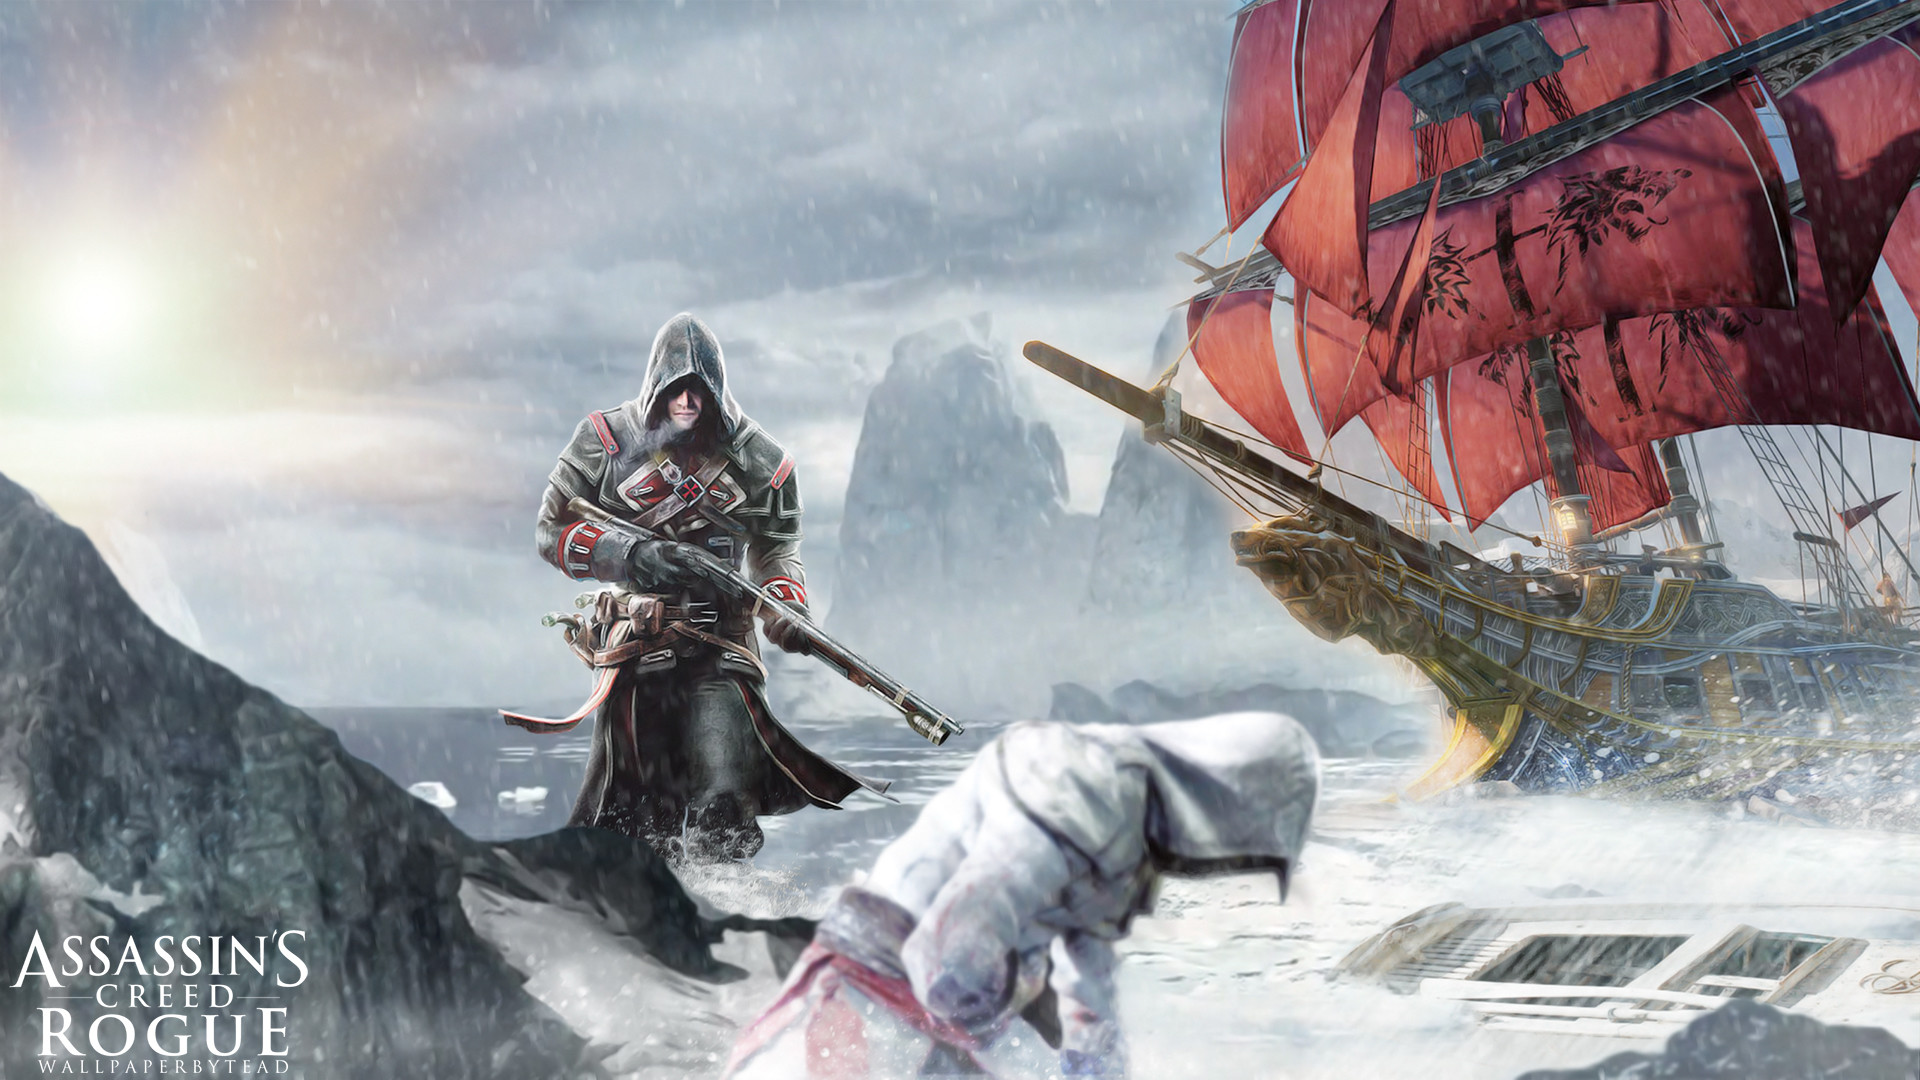 1920x1080 ... Assassin's Creed Rogue wallpaper by teaD by santap555